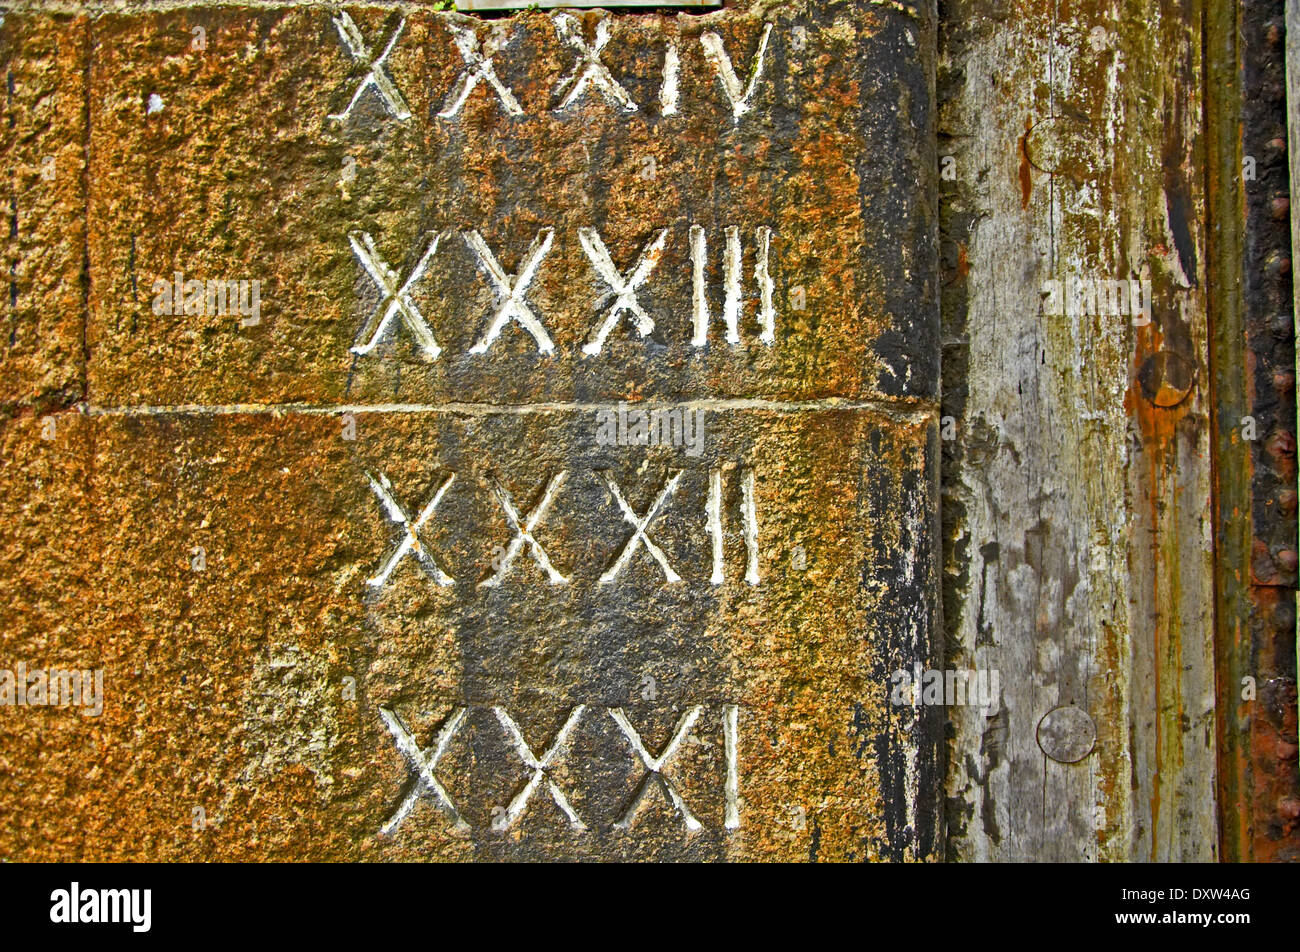 Roman numerals carved into the stonework of the old dock walls gave depth of water details. - Stock Image